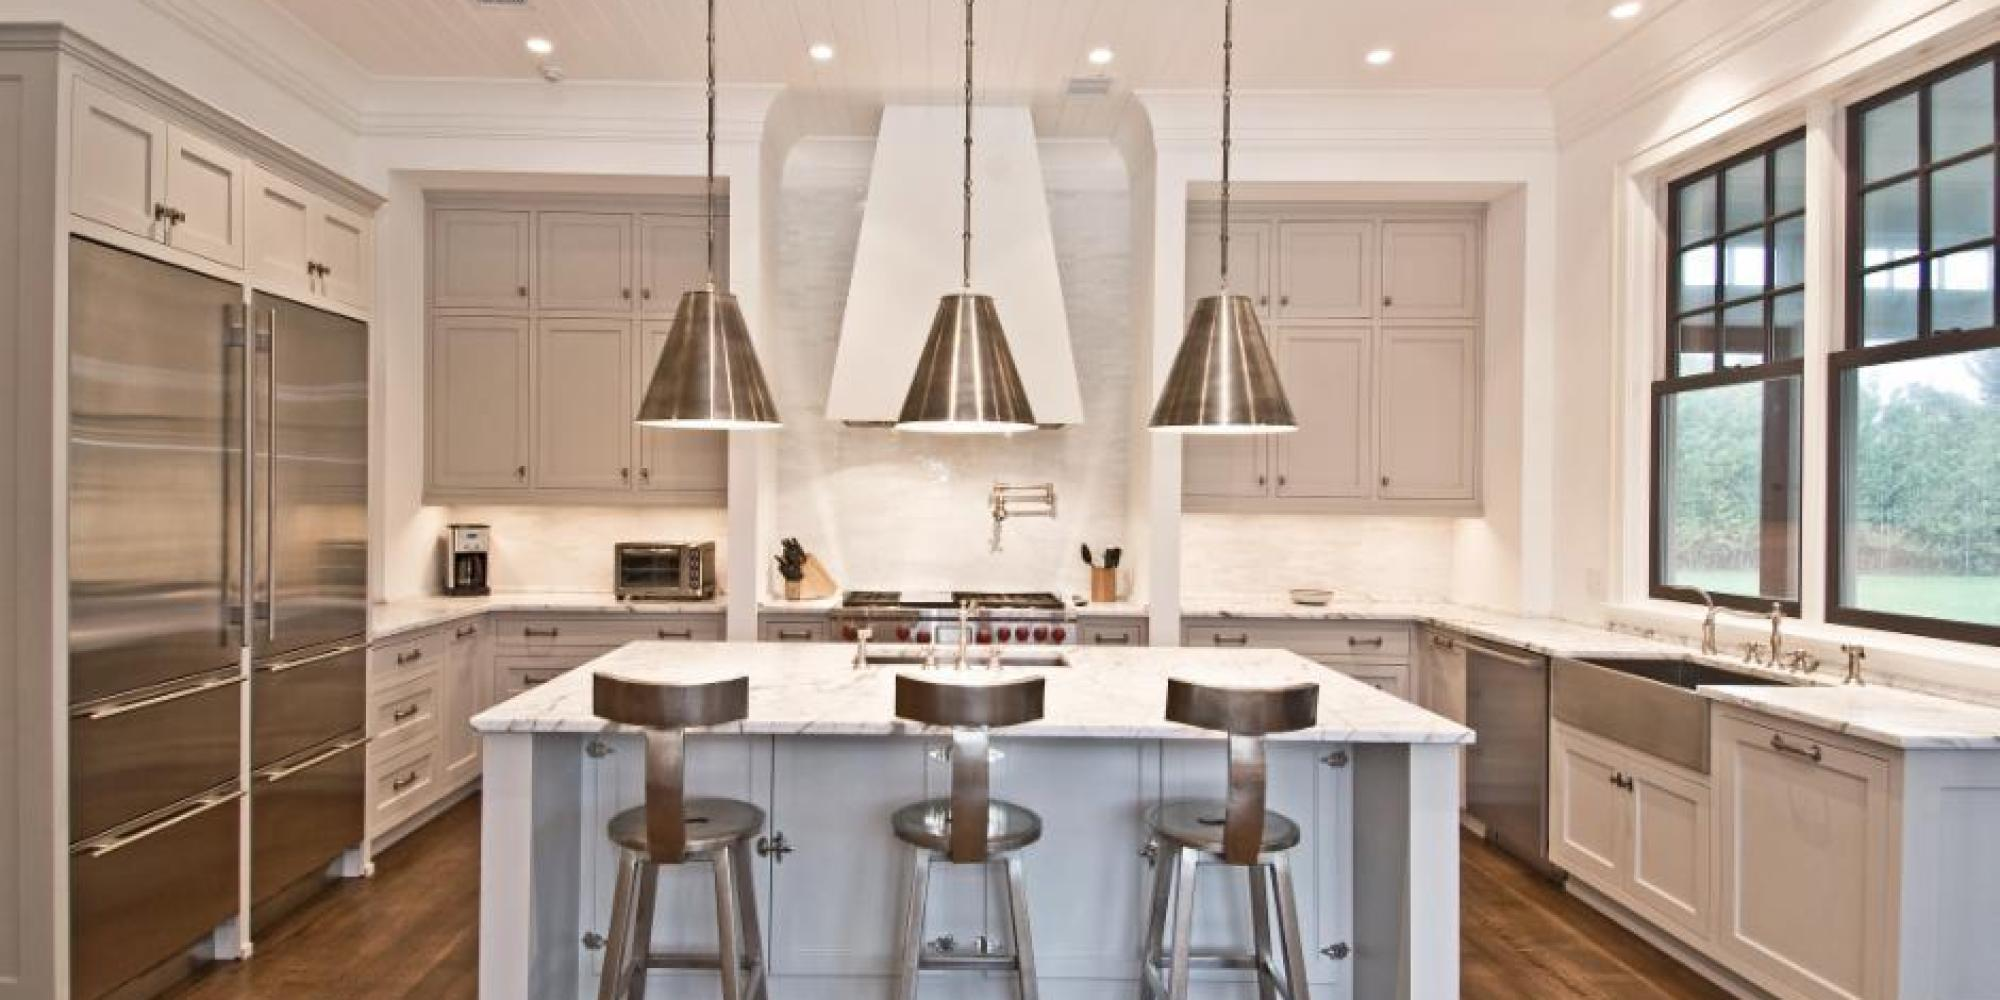 The Best Paint Colors For Every Type Of Kitchen HuffPost - Best paint to use on kitchen cabinets